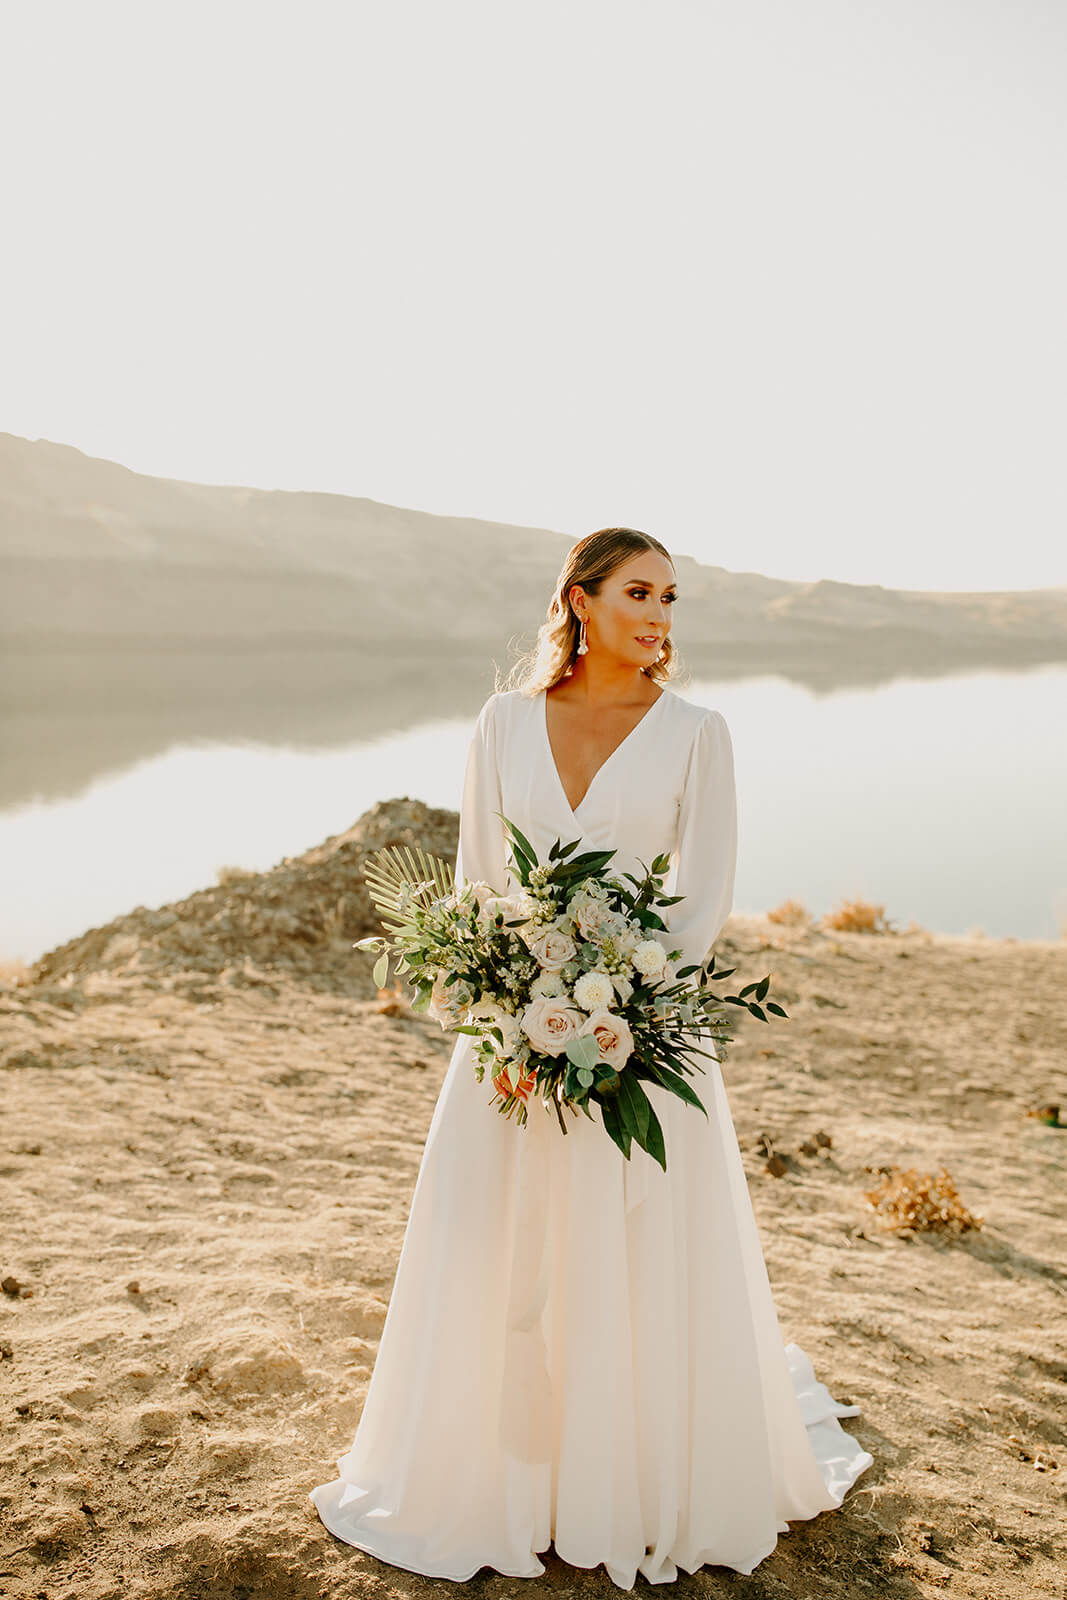 A bride wearing a flowing white dress in the desert